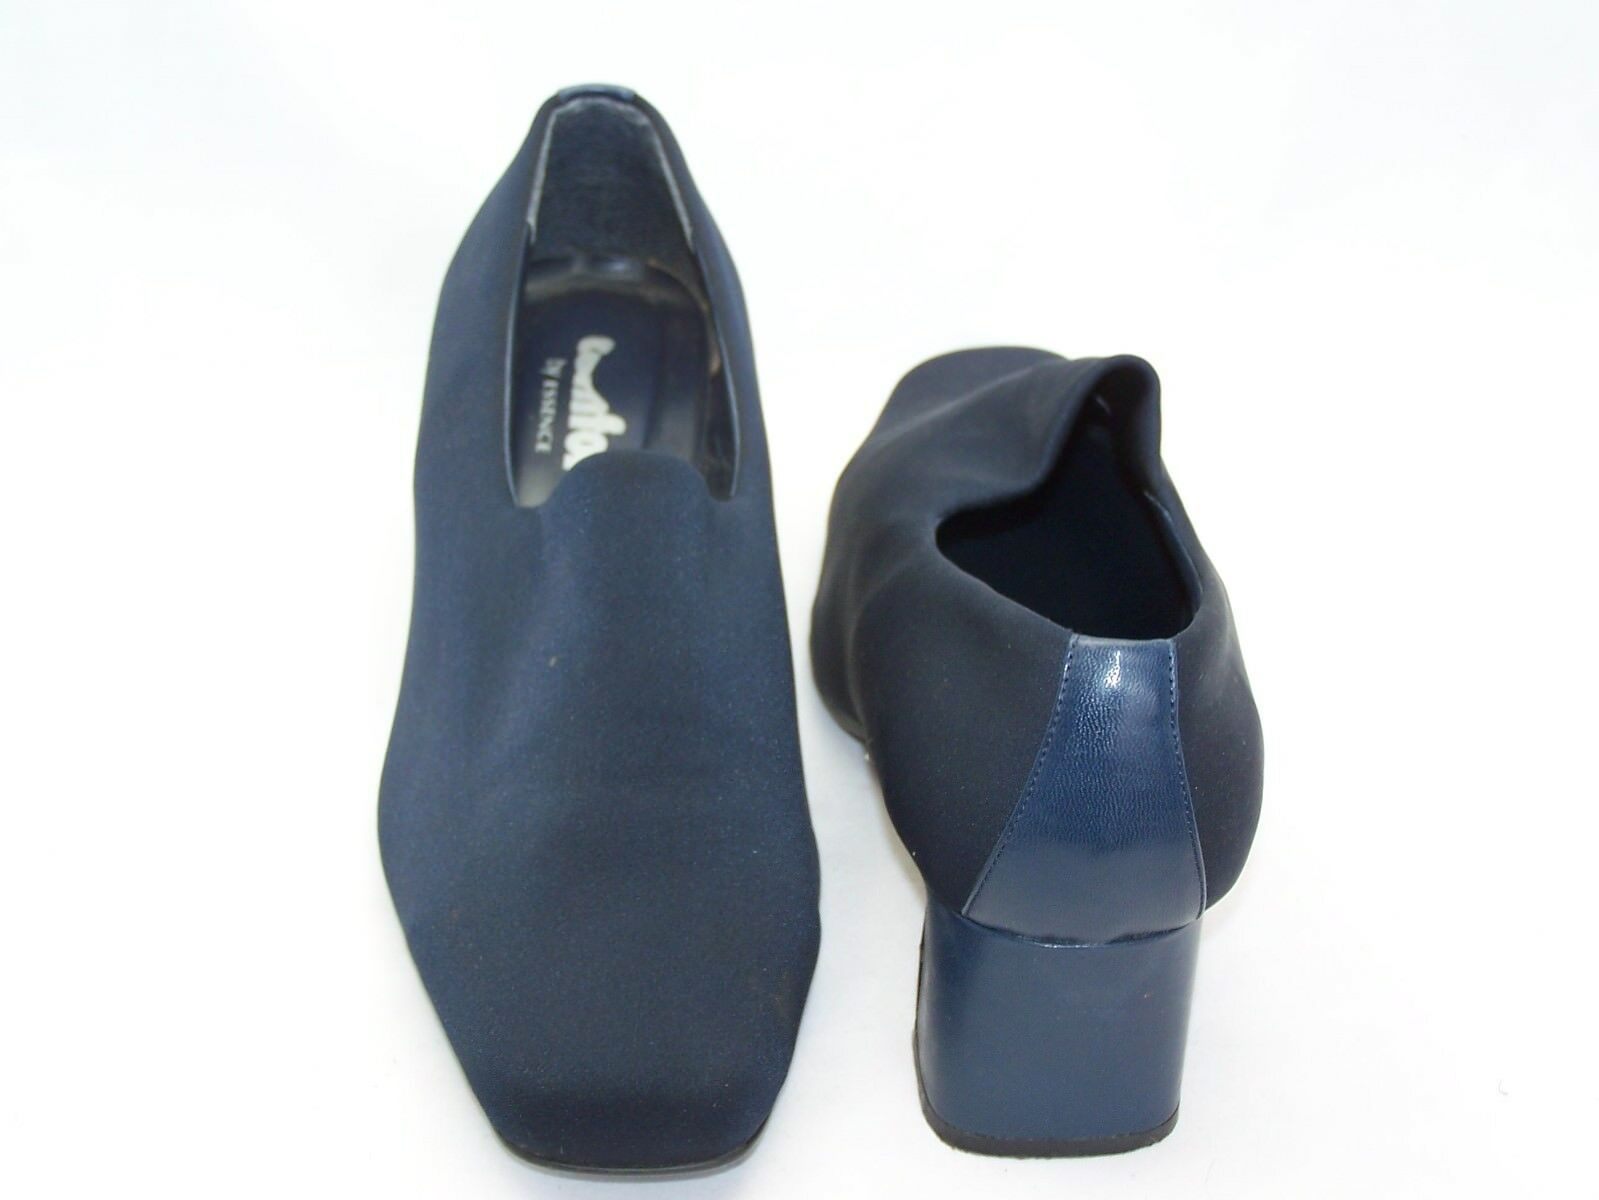 Size 8 navy ble high front, Comfort block heel shoes from Comfort front, by Essence 9790cd